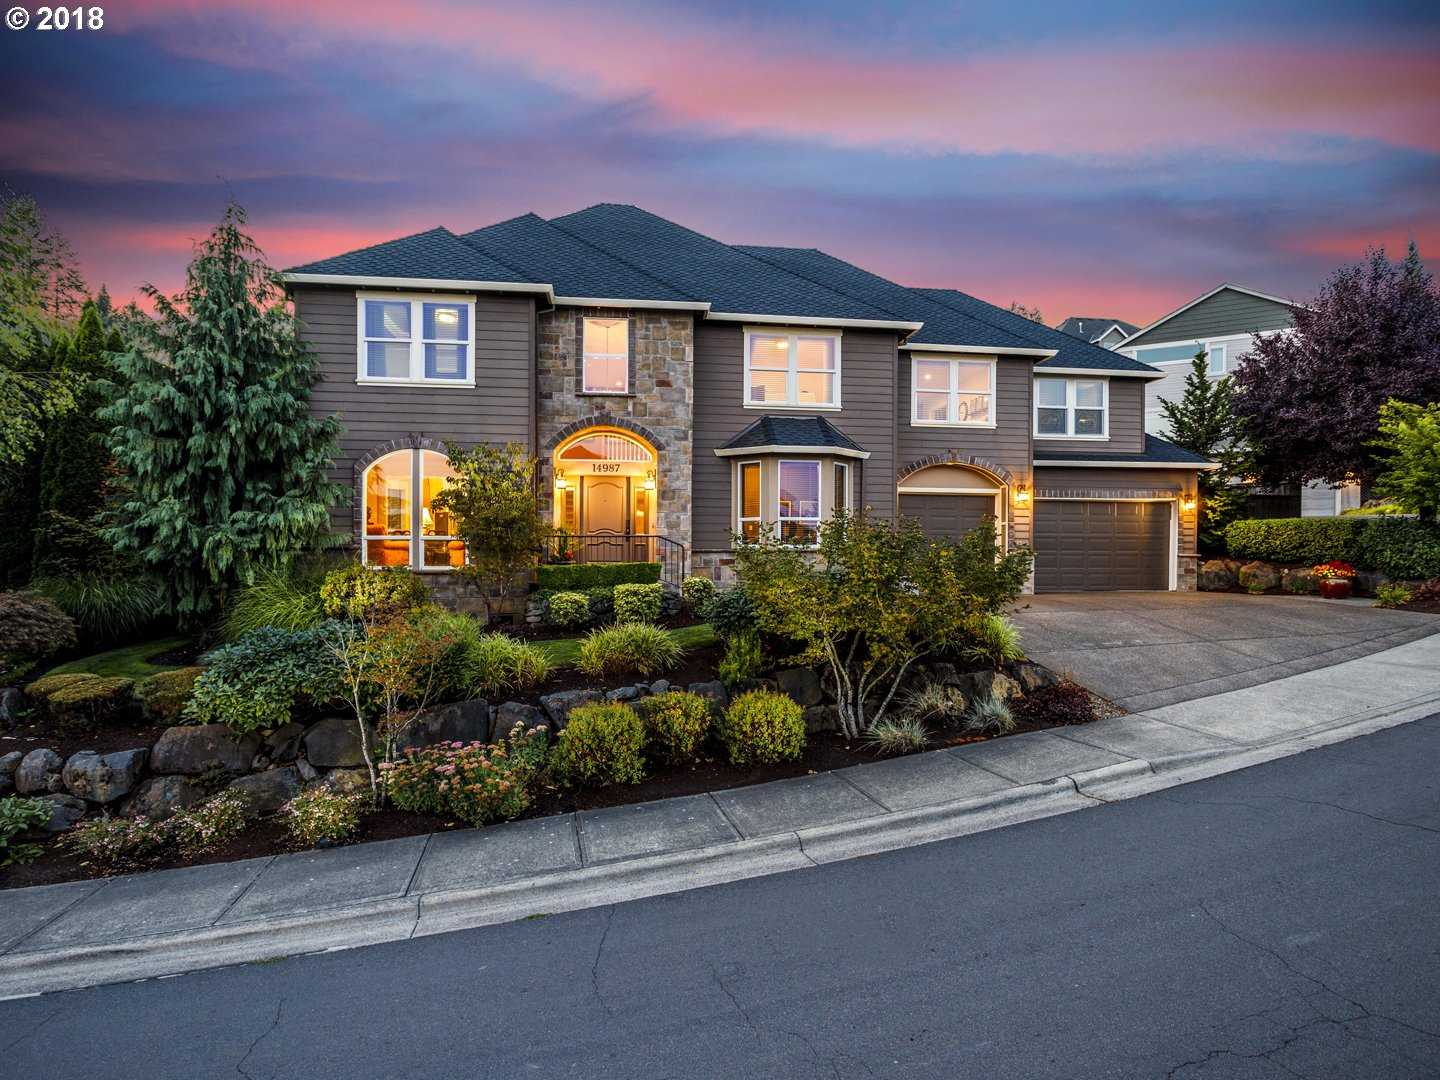 $865,000 - 5Br/4Ba -  for Sale in Tigard